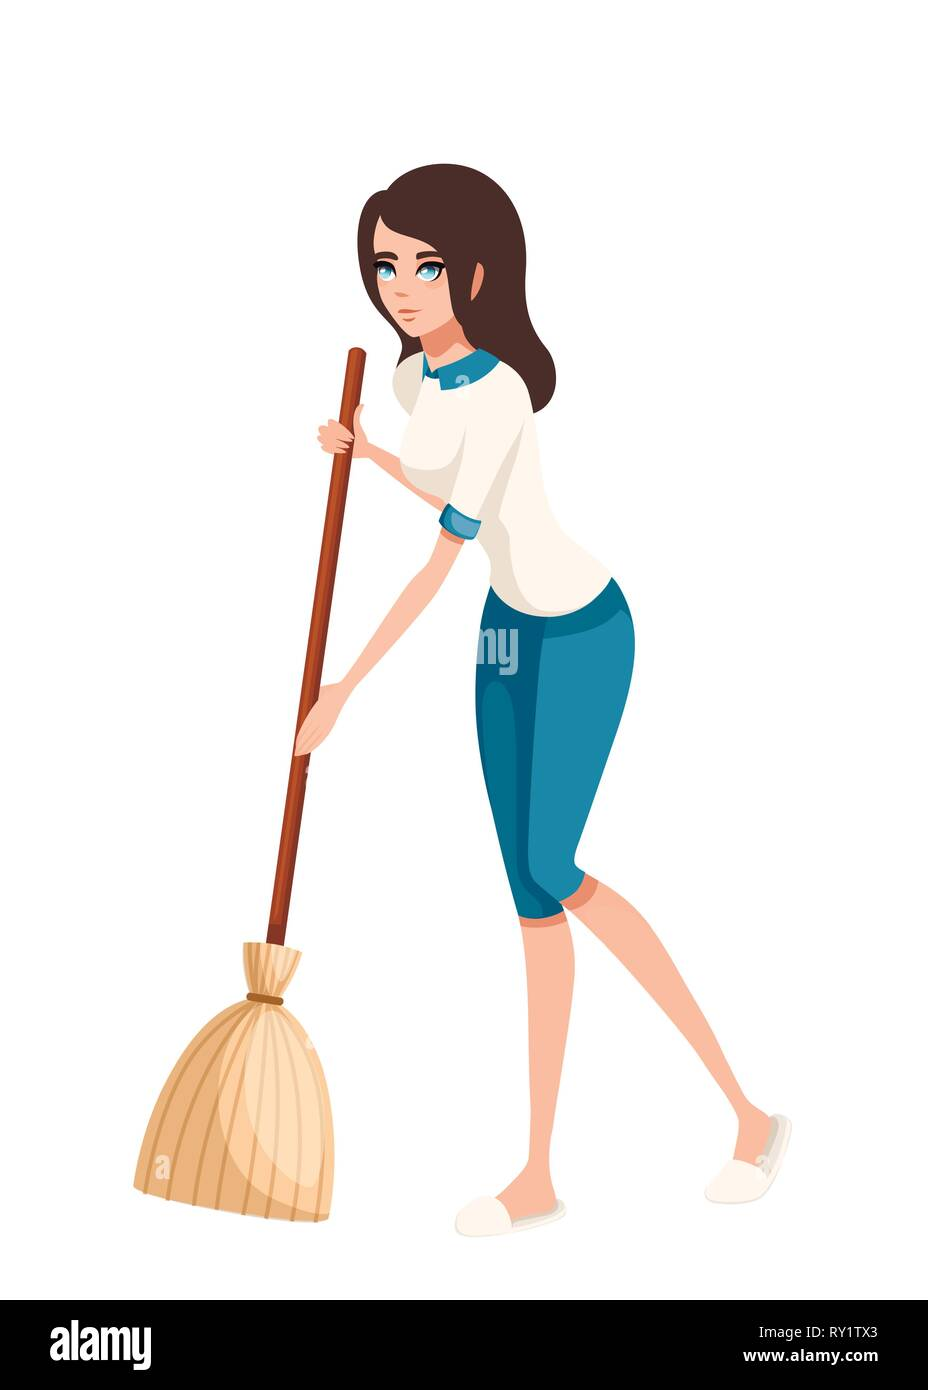 Cartoon character design. Women cleaning floor with broom. Flat vector illustration isolated on white background. - Stock Vector